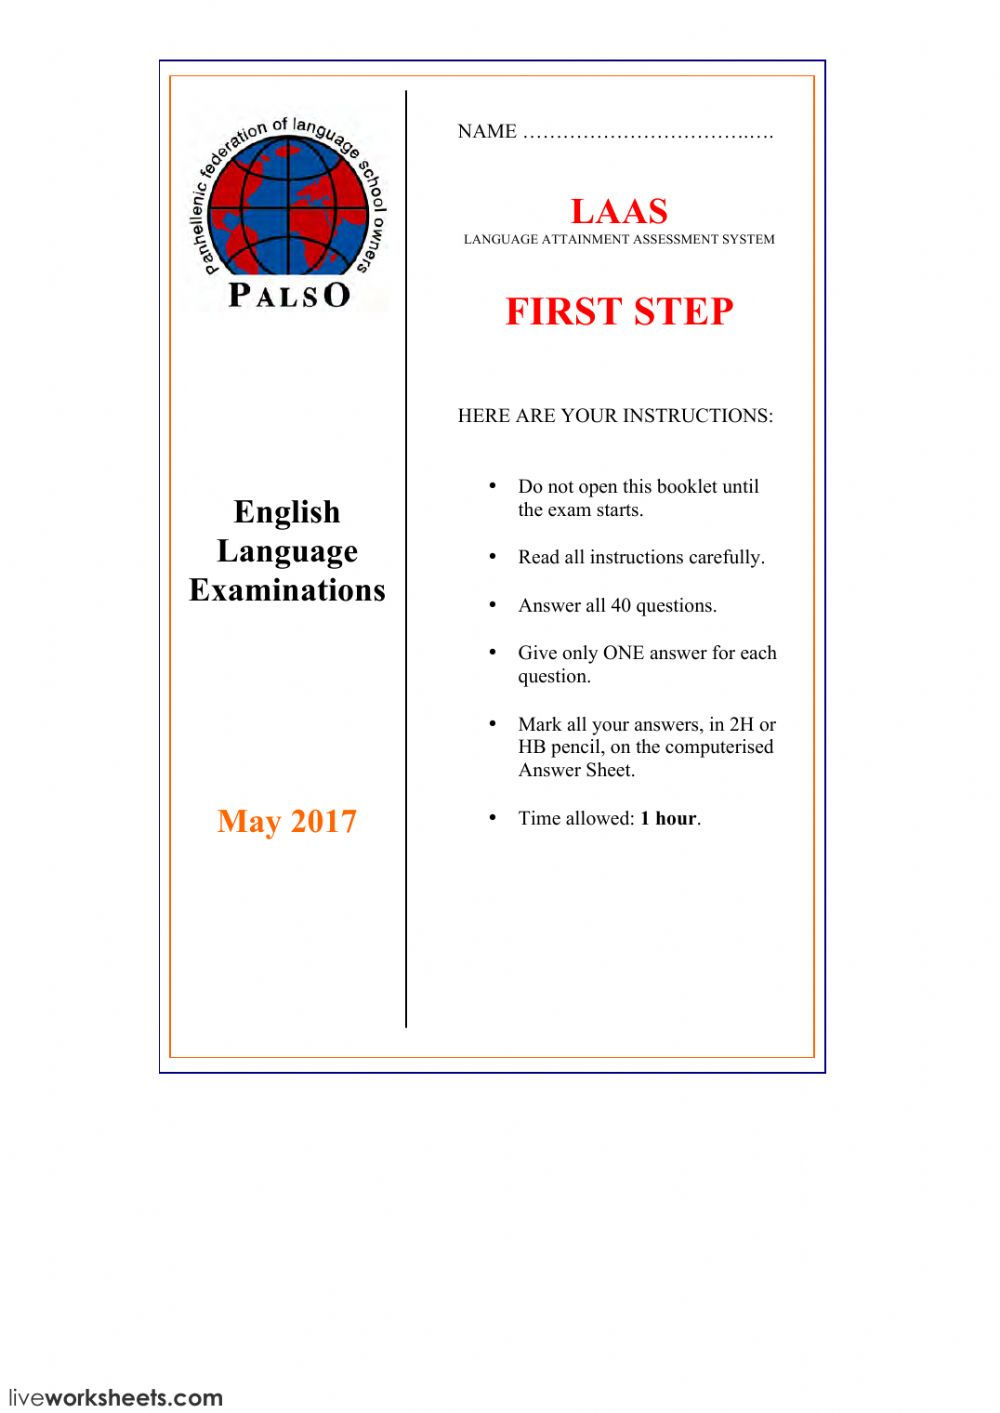 Laas First Step May 2017 Interactive Worksheet